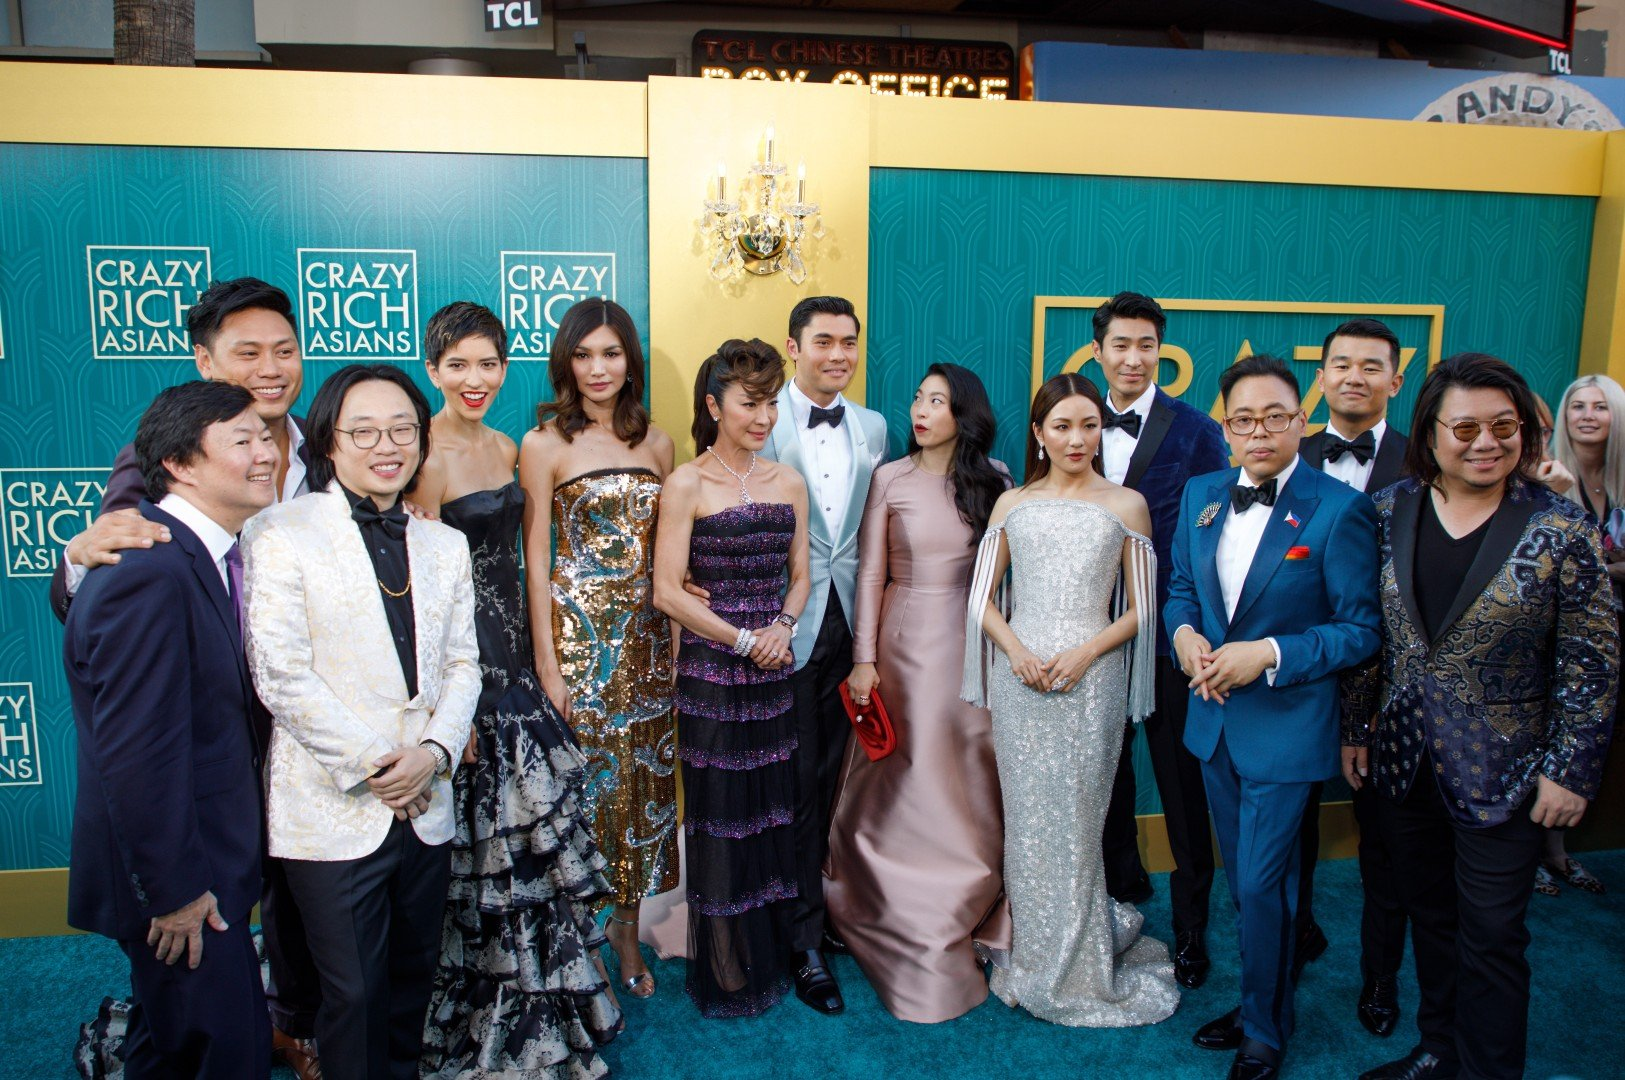 Rich Asians vs Kevin Spacey is no morality tale   South China Morning Post